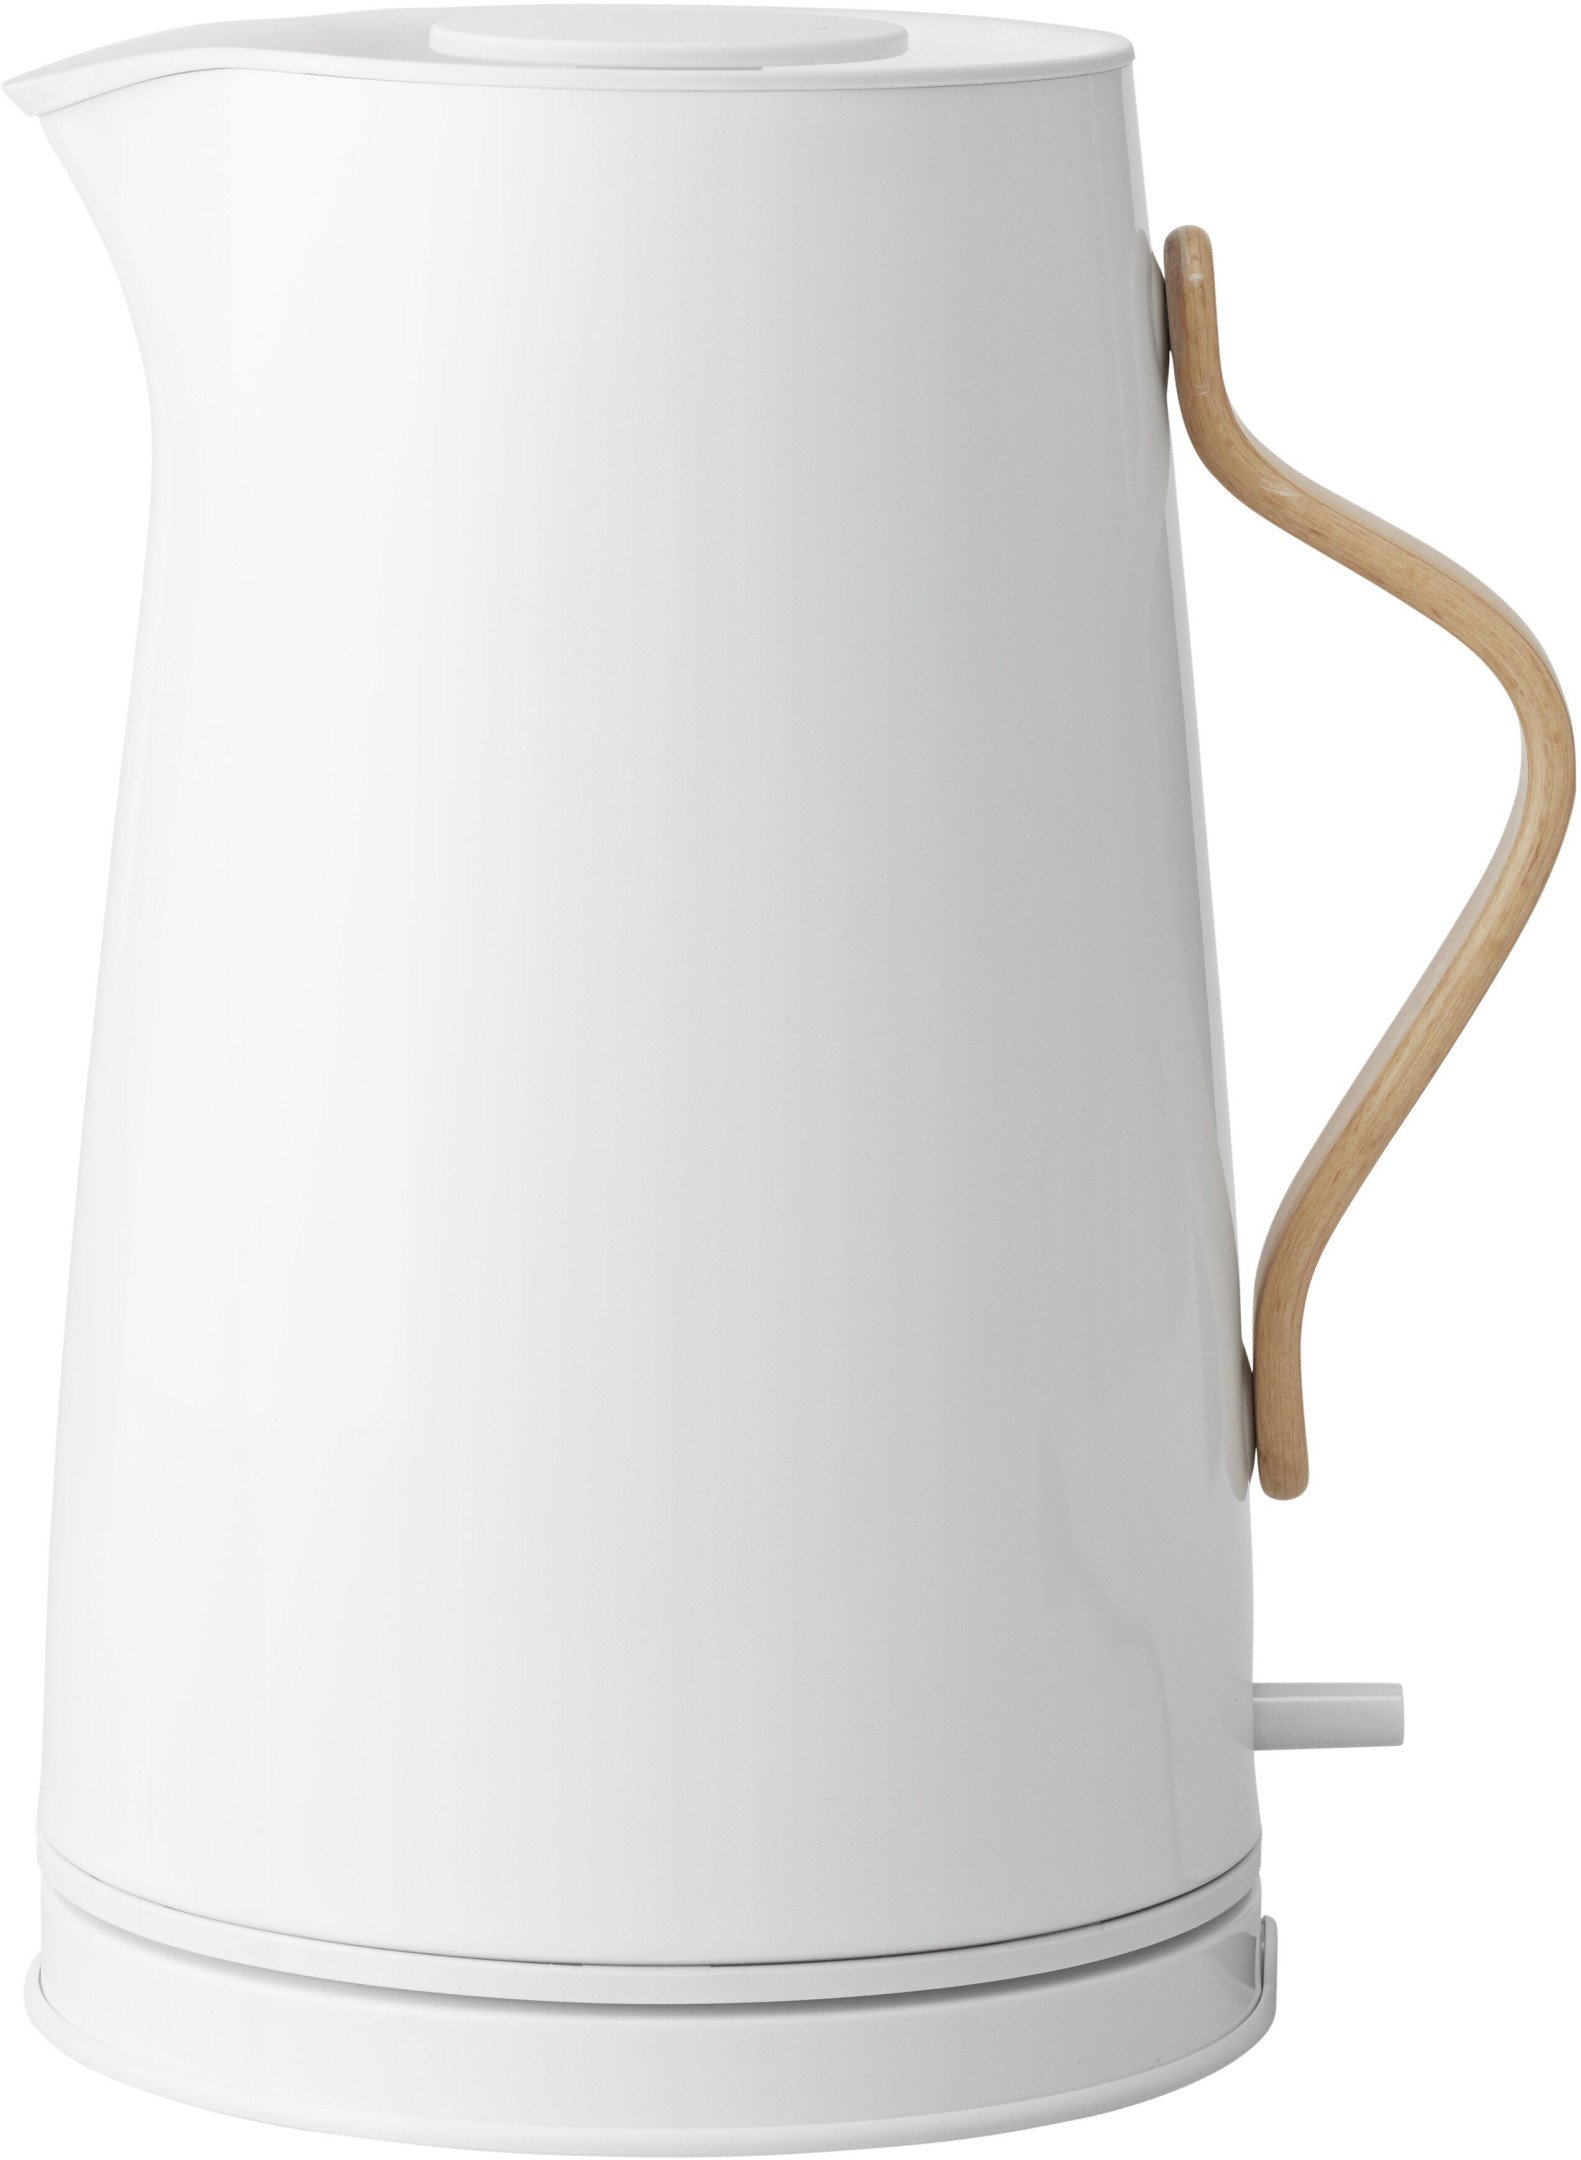 Electric Kettle Emma 1,2 L White by HolmbäckNordentoft for Stelton